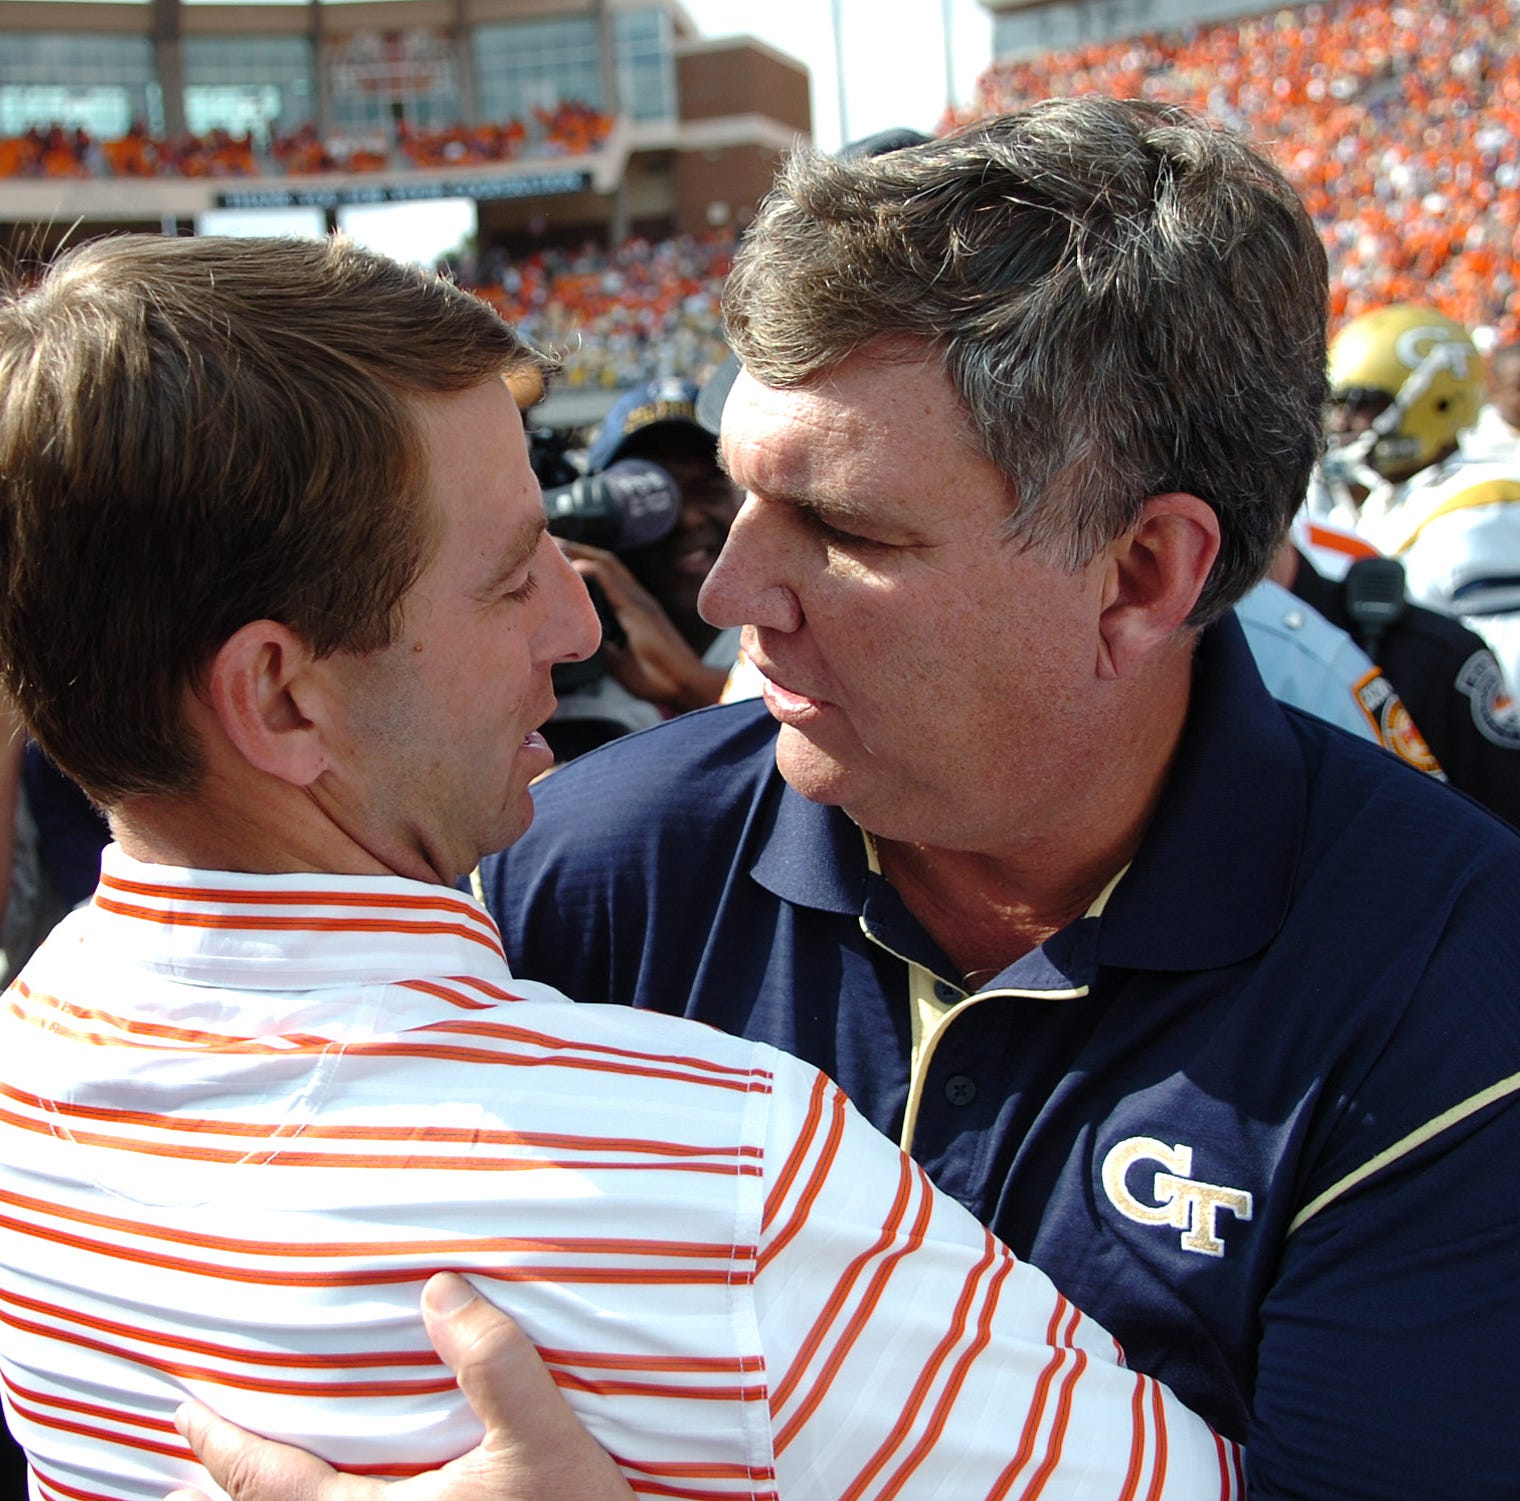 Dabo Swinney: 'I learned real quick' to prepare Clemson for Georgia Tech year-round